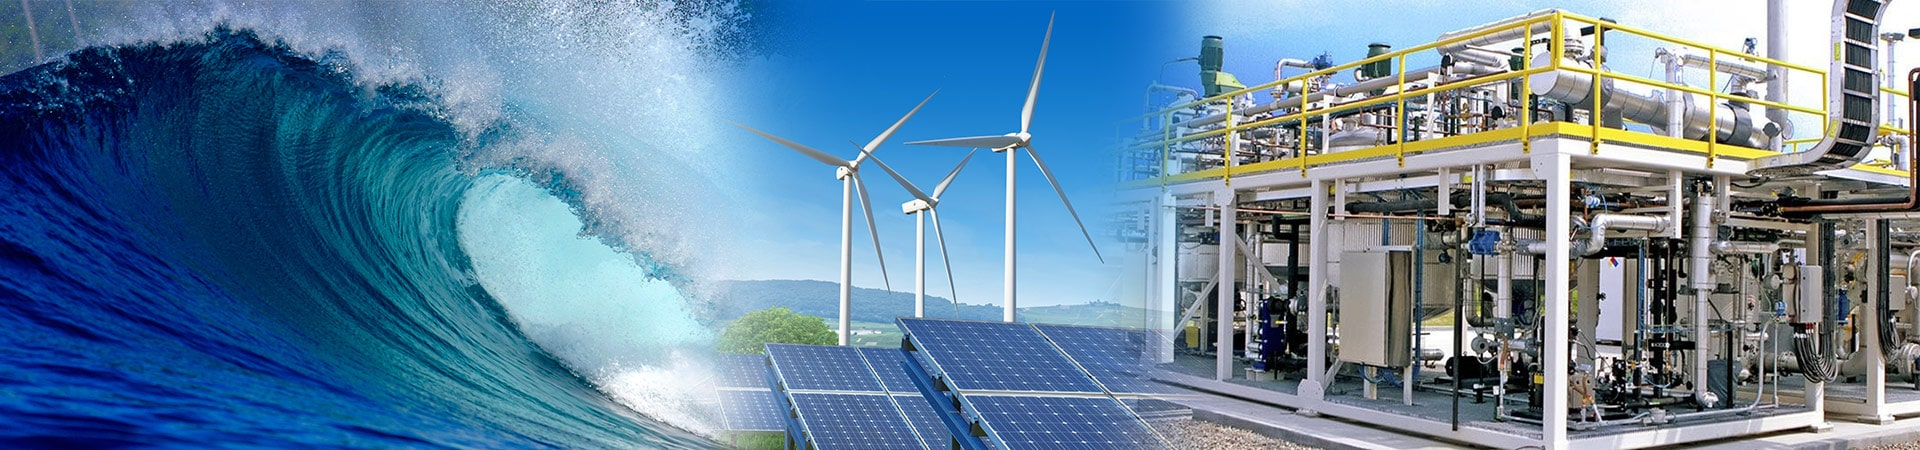 Controlling the global renewable energy industry